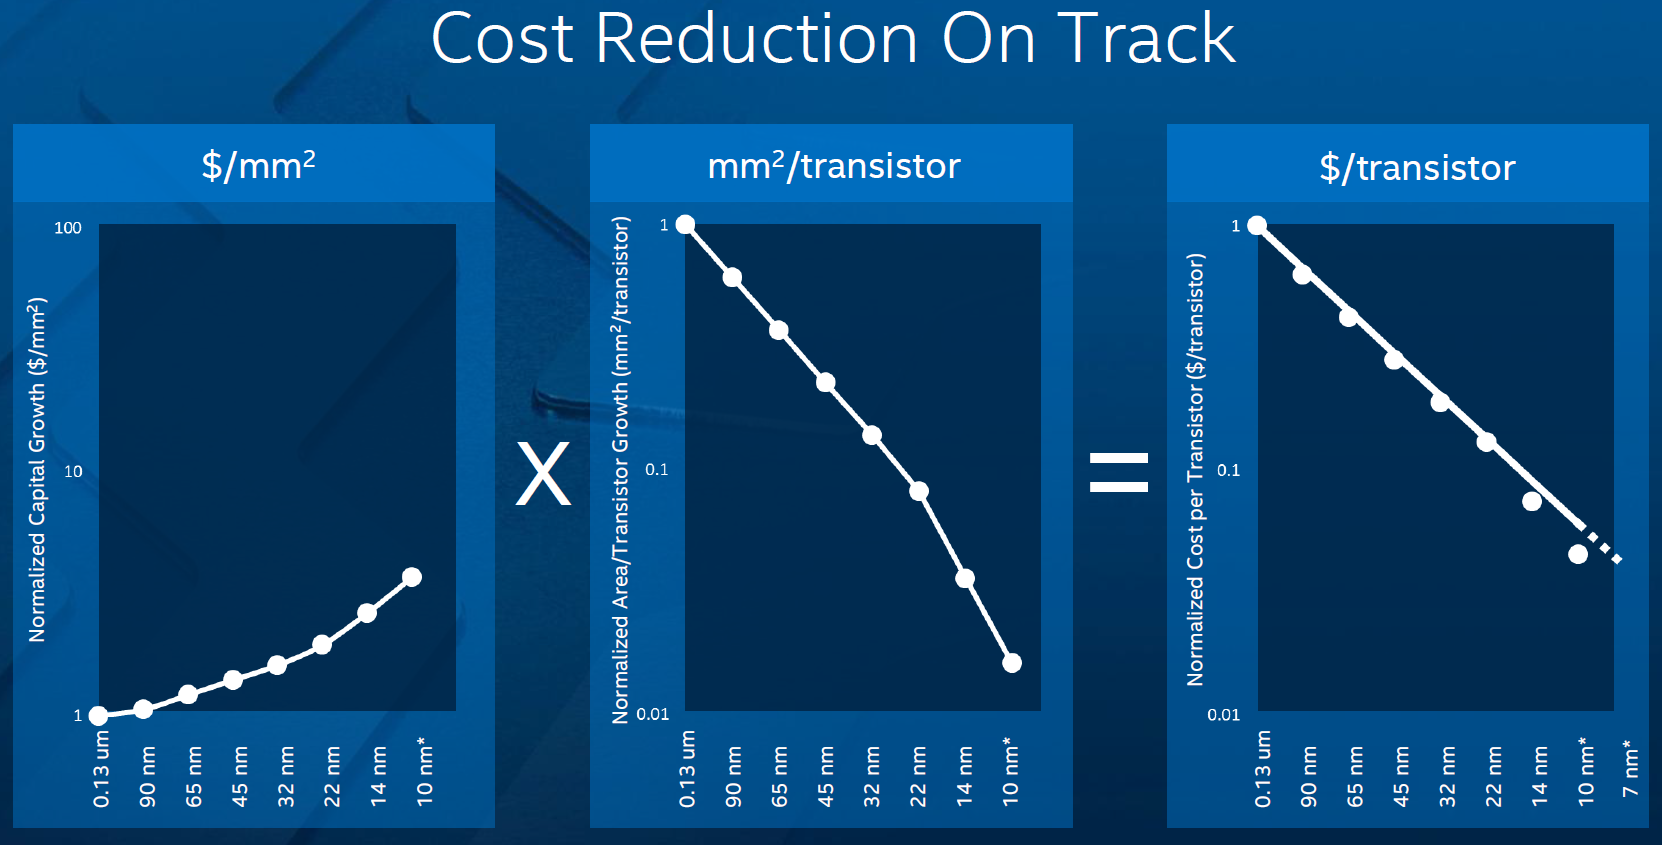 http://www.kitguru.net/wp-content/uploads/2015/06/intel_semiconductor_reduction_cost_chip_manufacturing.png